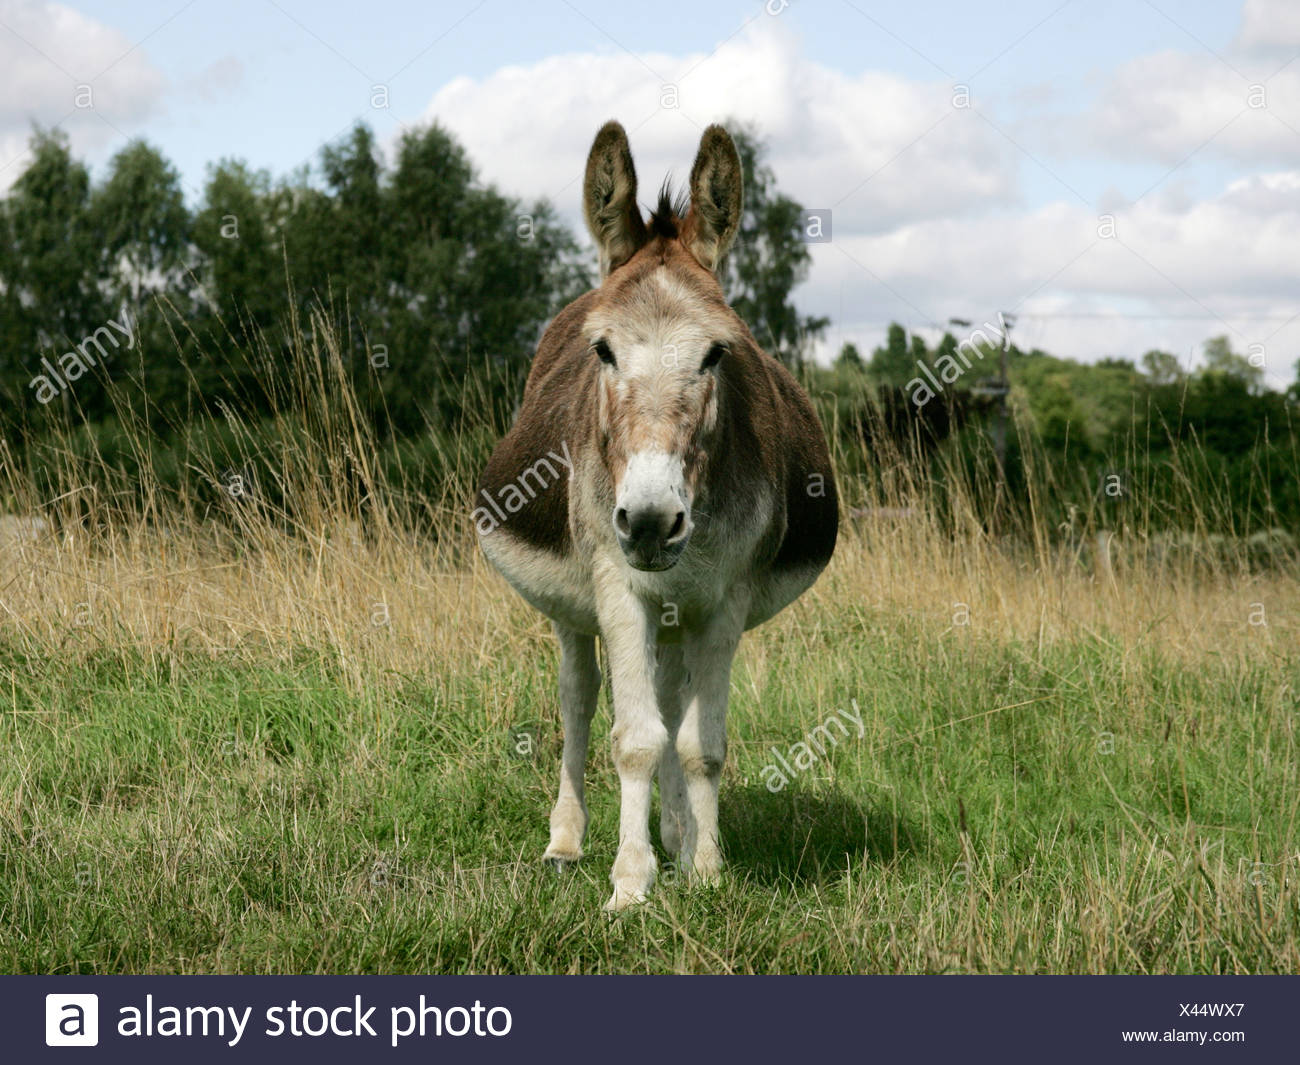 a large fat overweight donkey stock photo 277932655 alamy